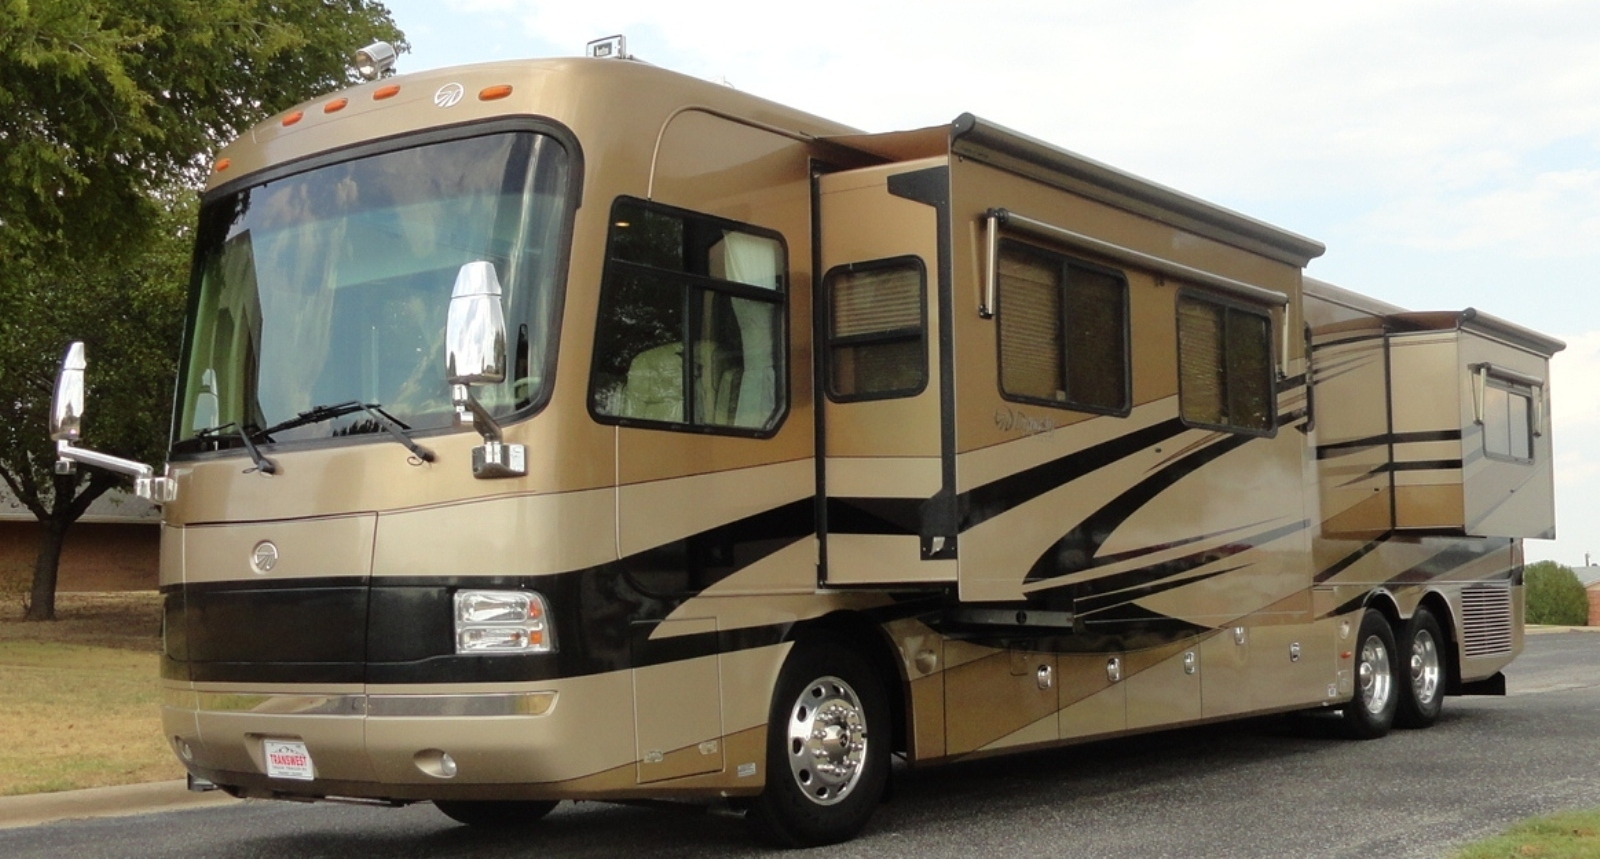 monaco dynasty 42 diamond iv diesel pushers for sale by owner. Black Bedroom Furniture Sets. Home Design Ideas